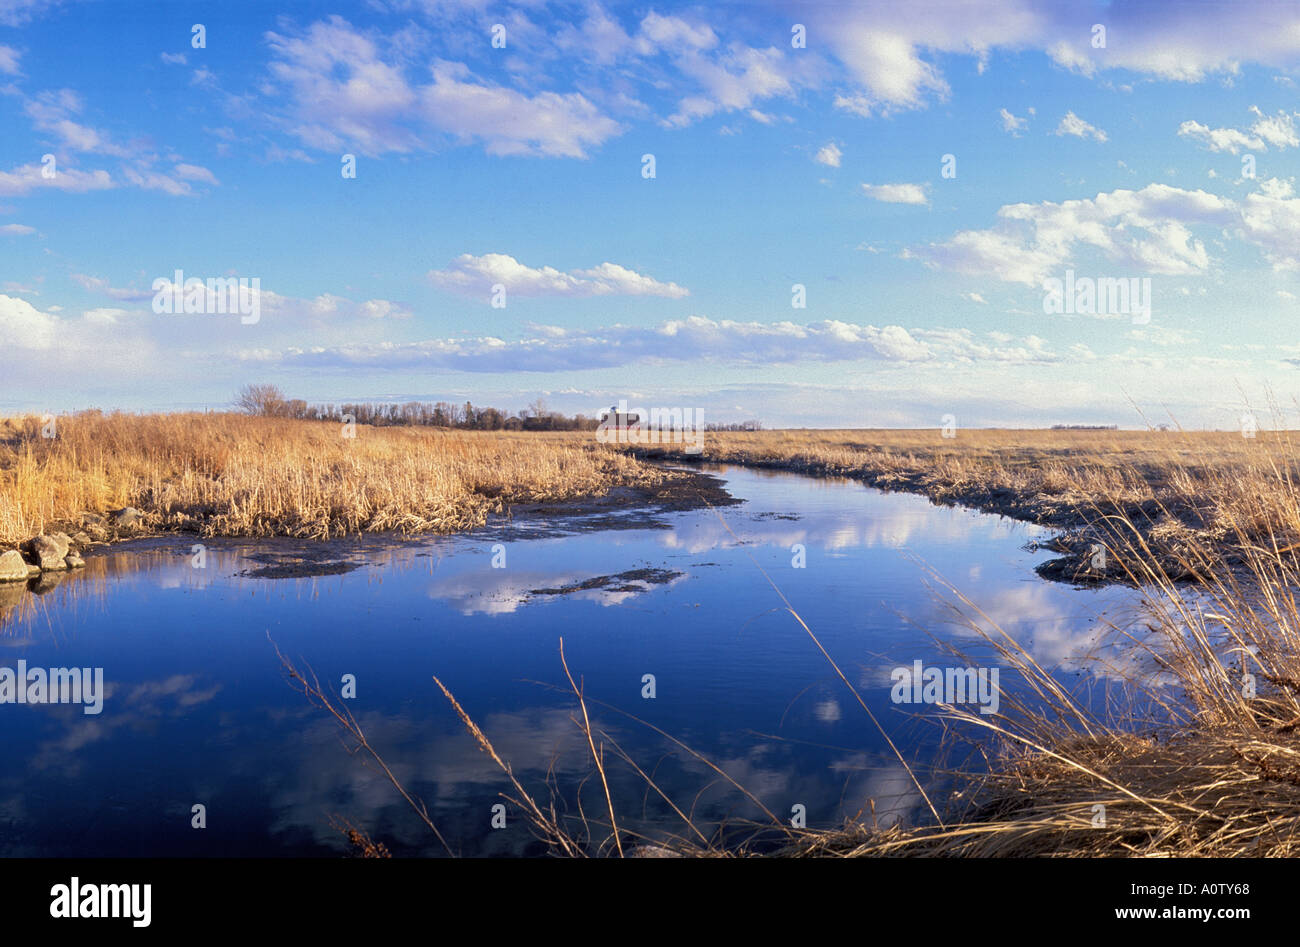 Prairie Pothole in North Dakota - Stock Image